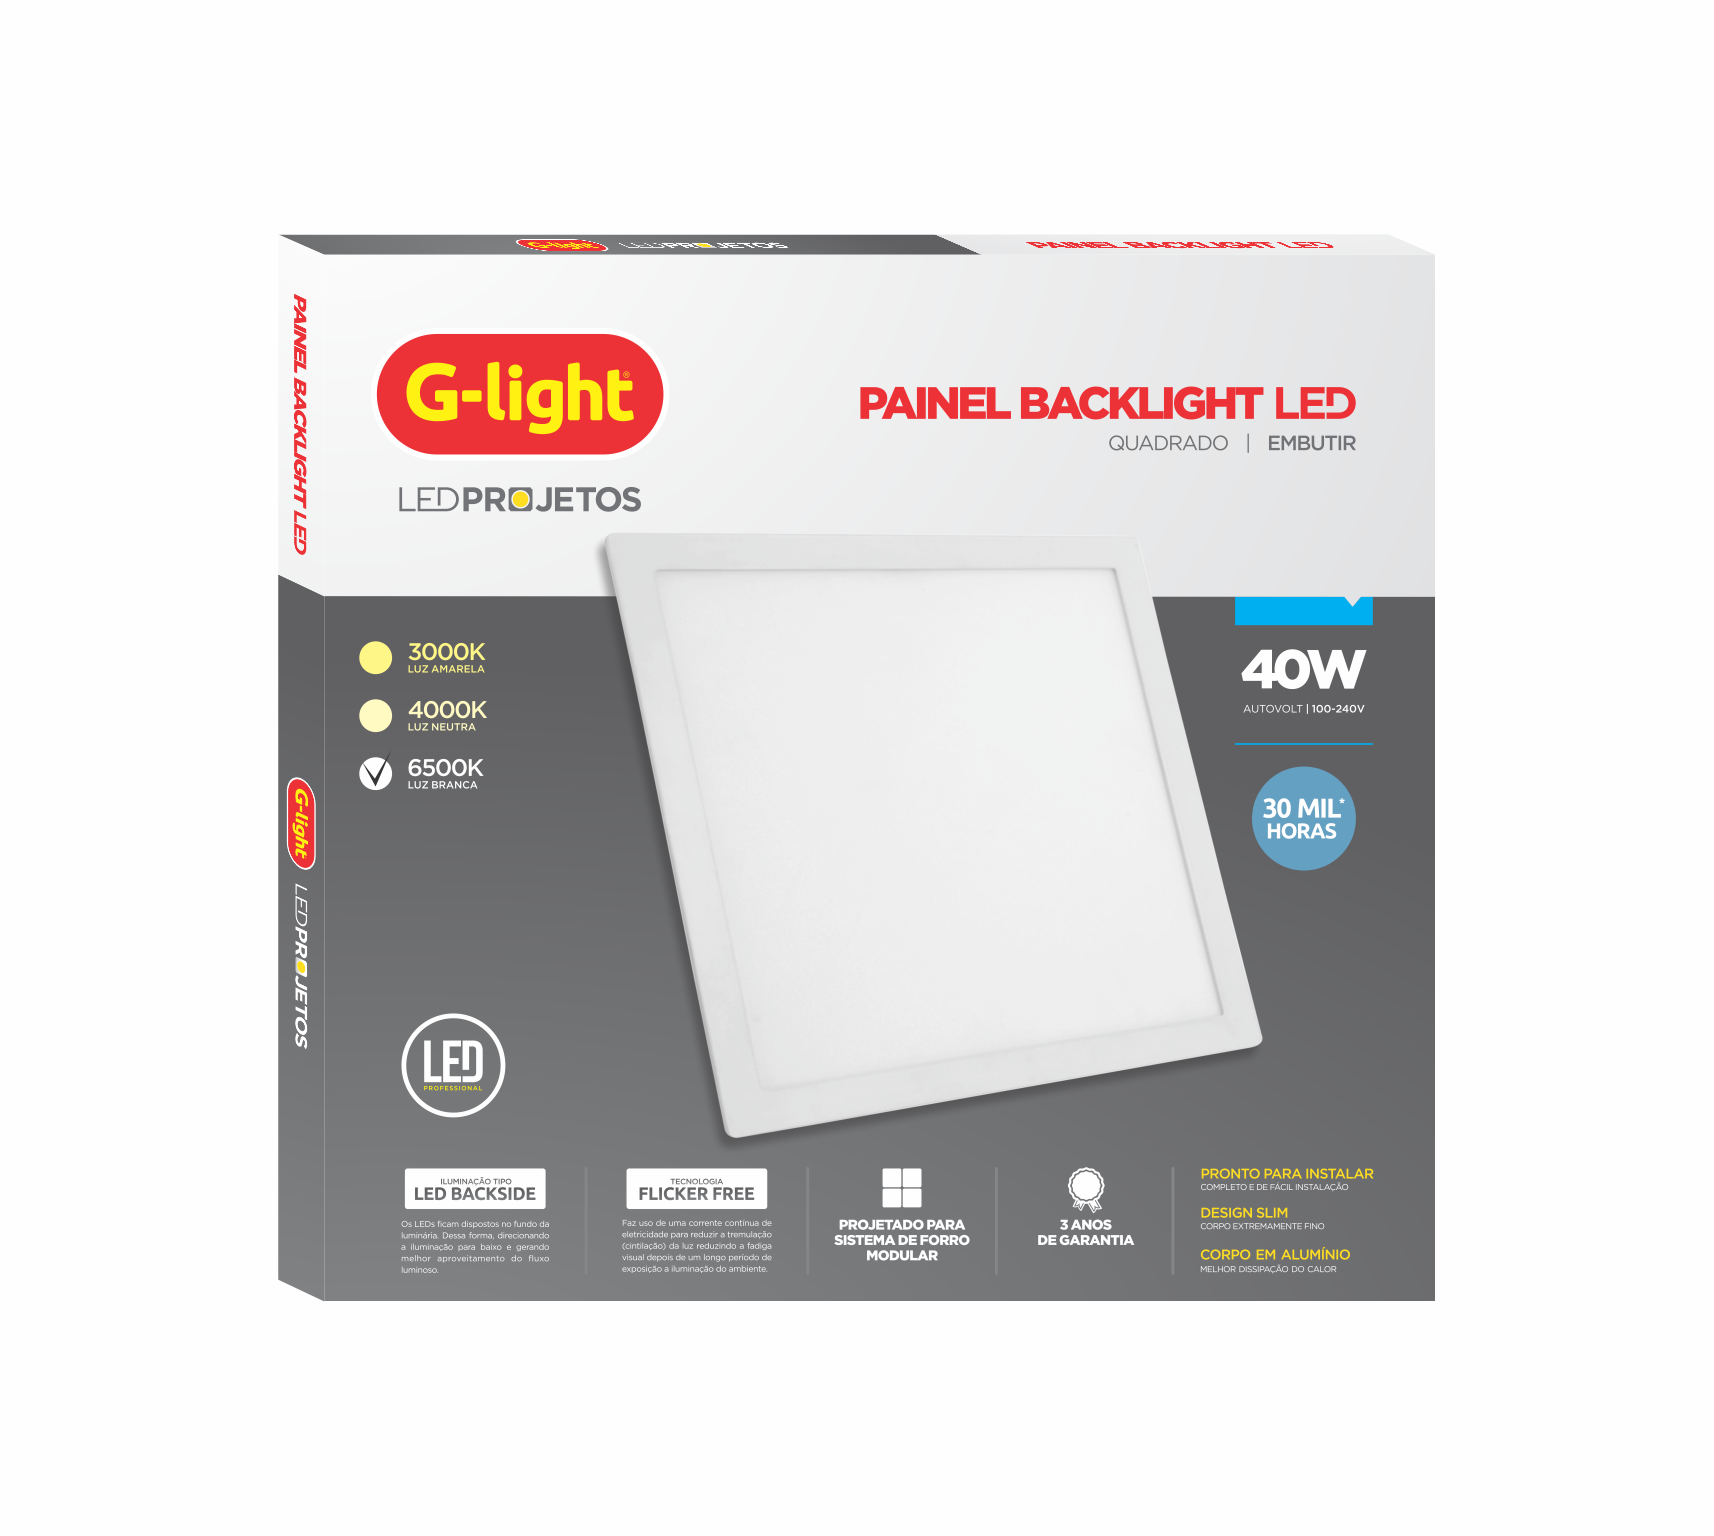 PAINEL-BACKLIGHT-LED-P-620E-40-65-3BRC